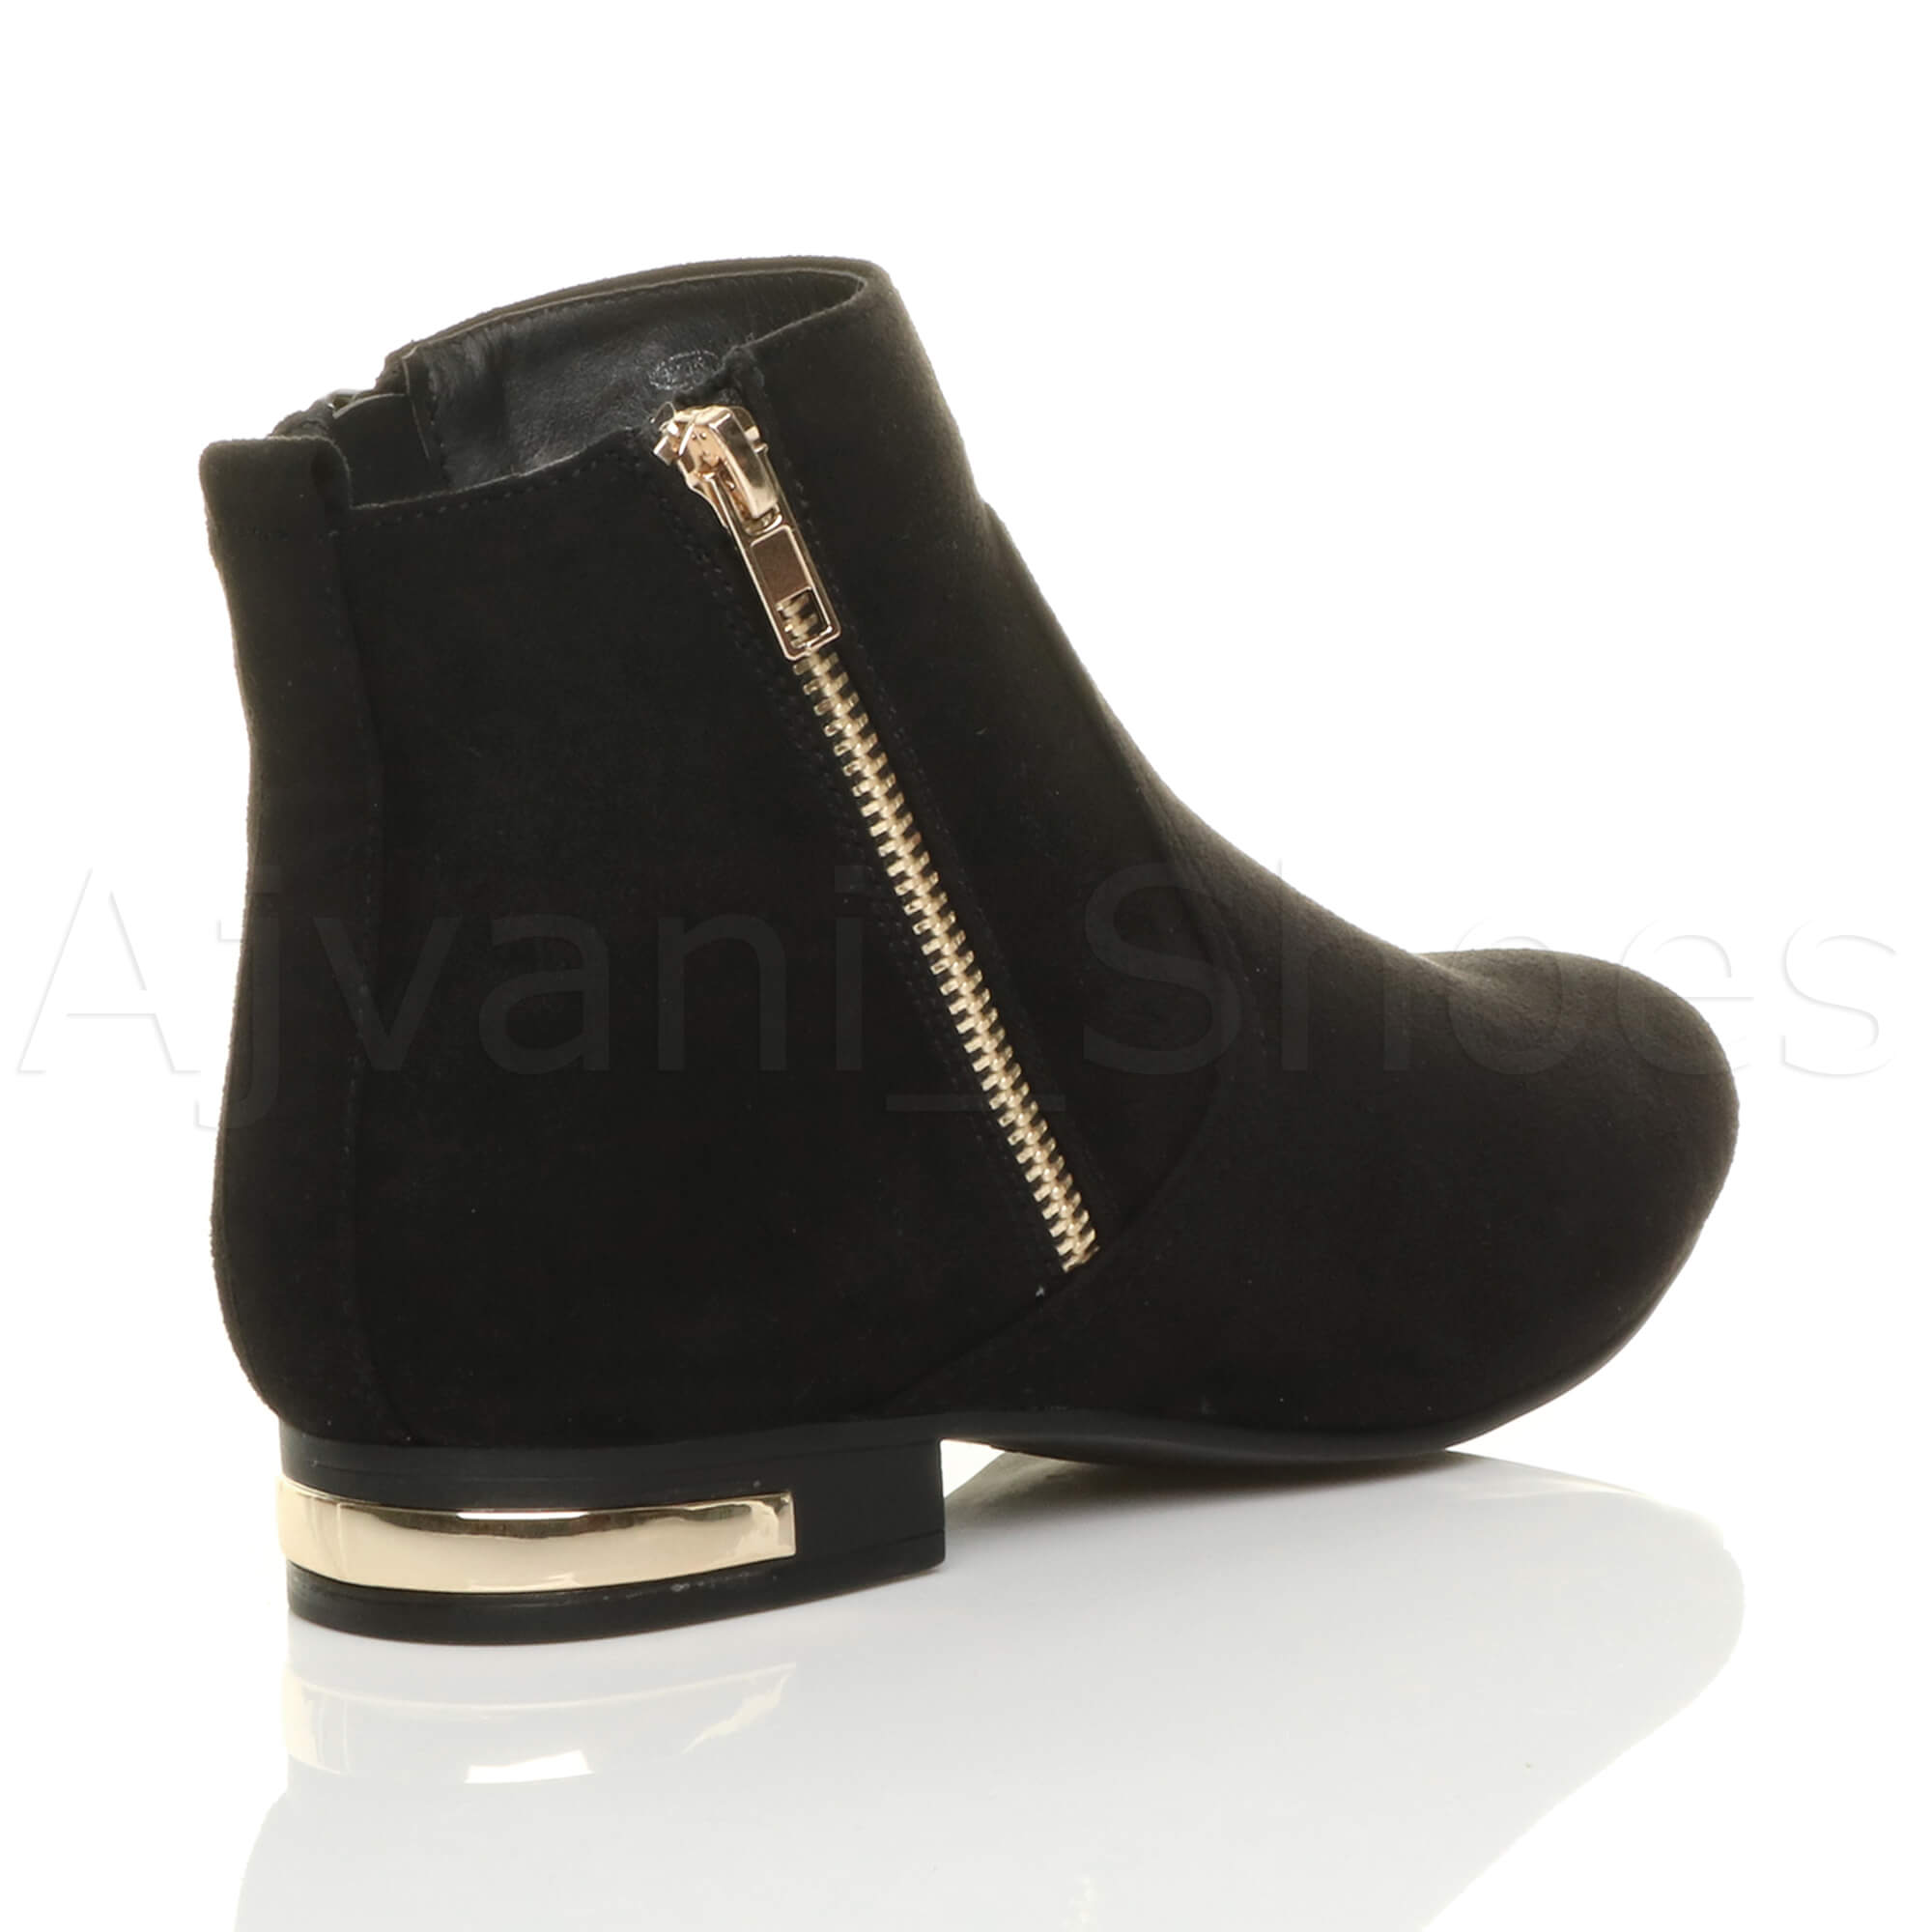 WOMENS-LADIES-LOW-HEEL-GOLD-ZIP-CONTRAST-RIDING-PIXIE-ANKLE-BOOTS-BOOTIES-SIZE thumbnail 13